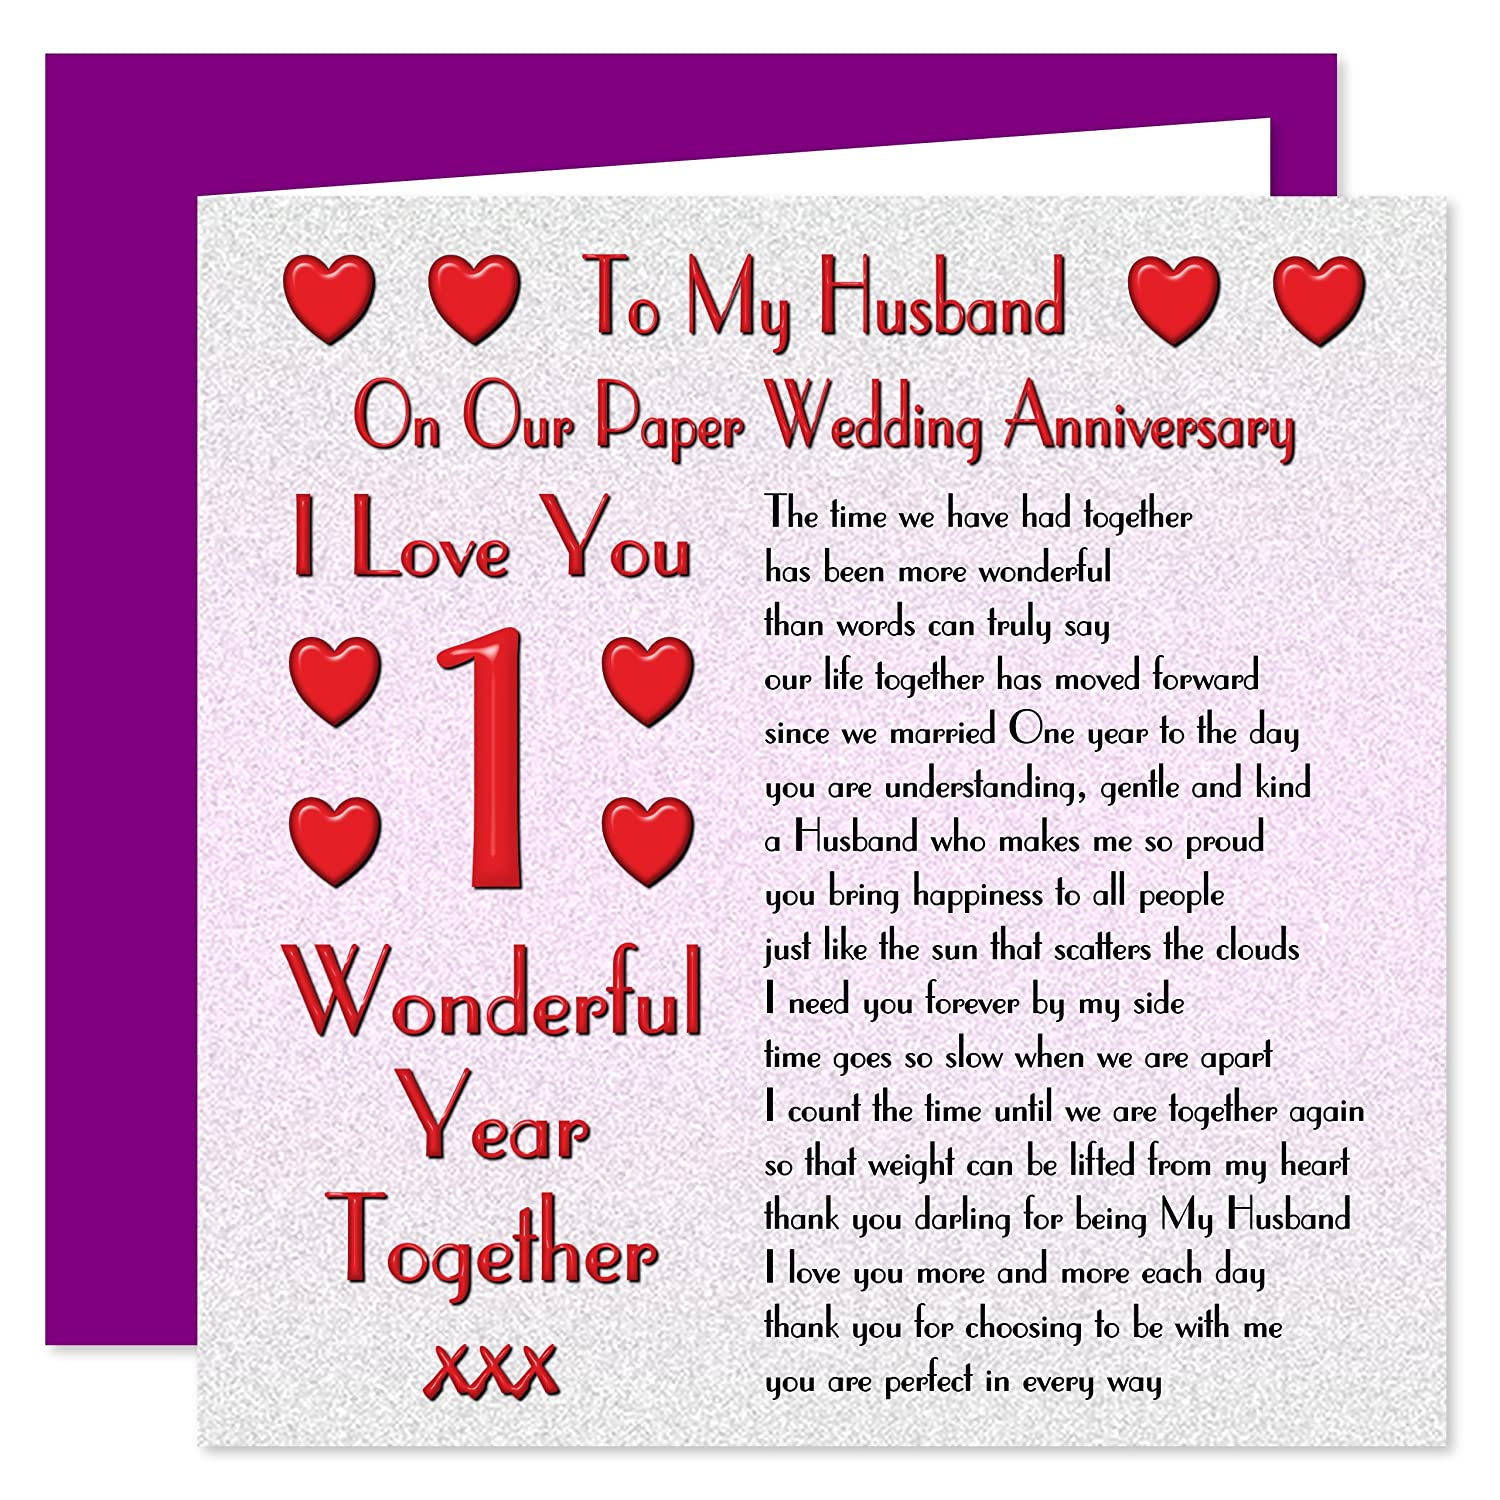 My Husband 1st Wedding Anniversary Card Our Paper Anniversary 1 Year Sentimental Verse I Love You Amazon fice Products